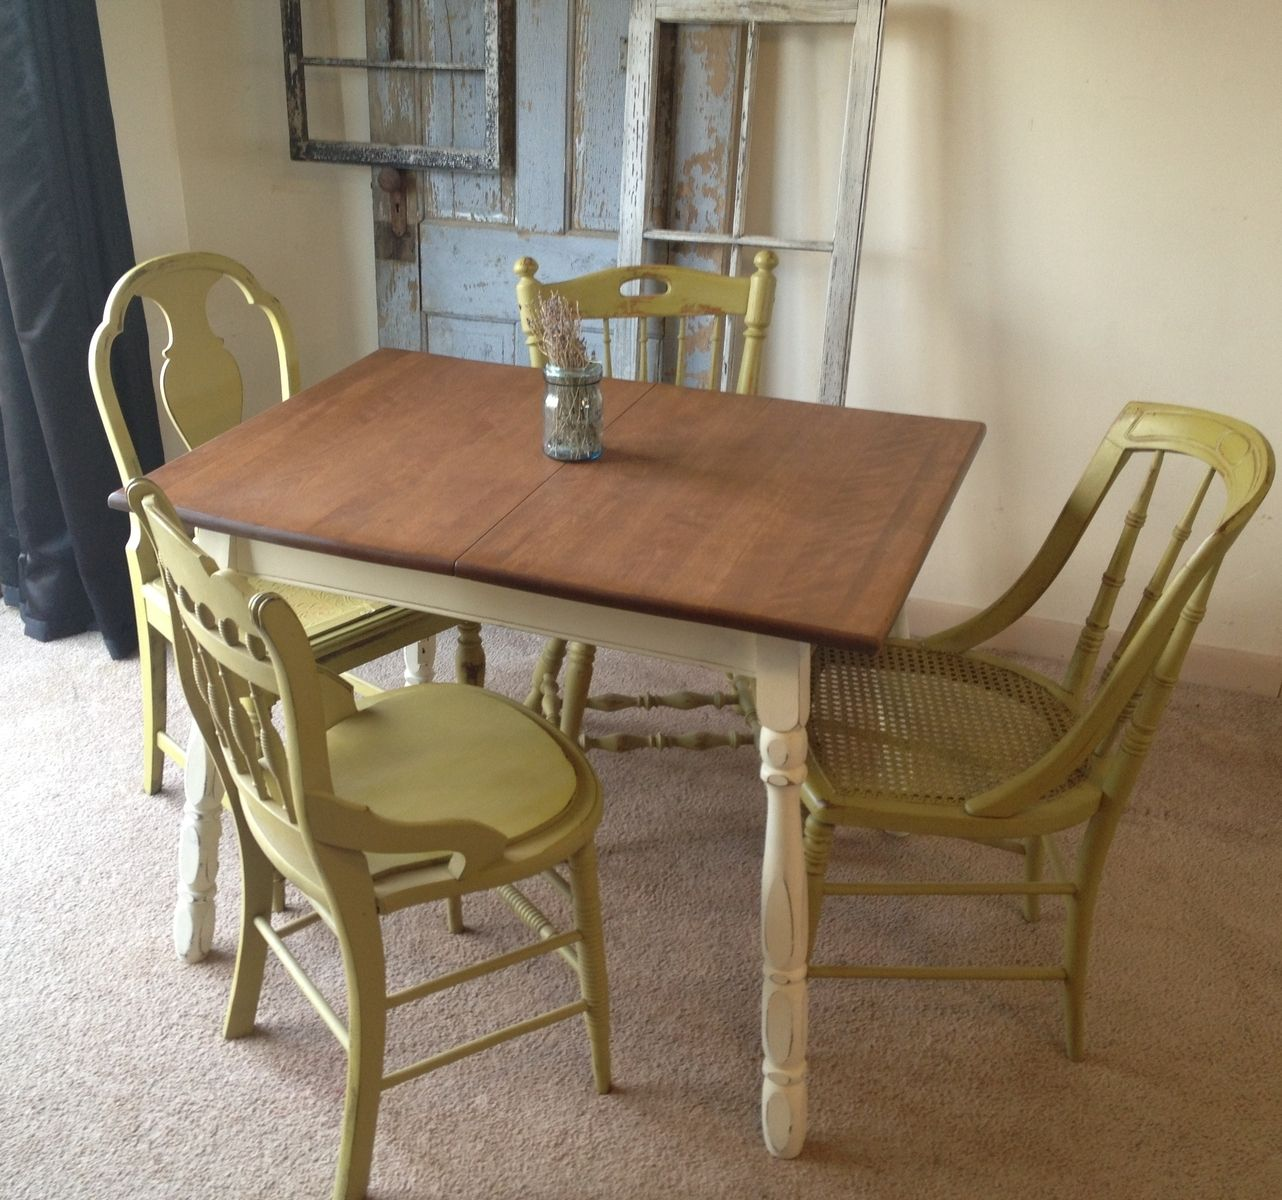 vintage small kitchen table: like the cream painted legs with the